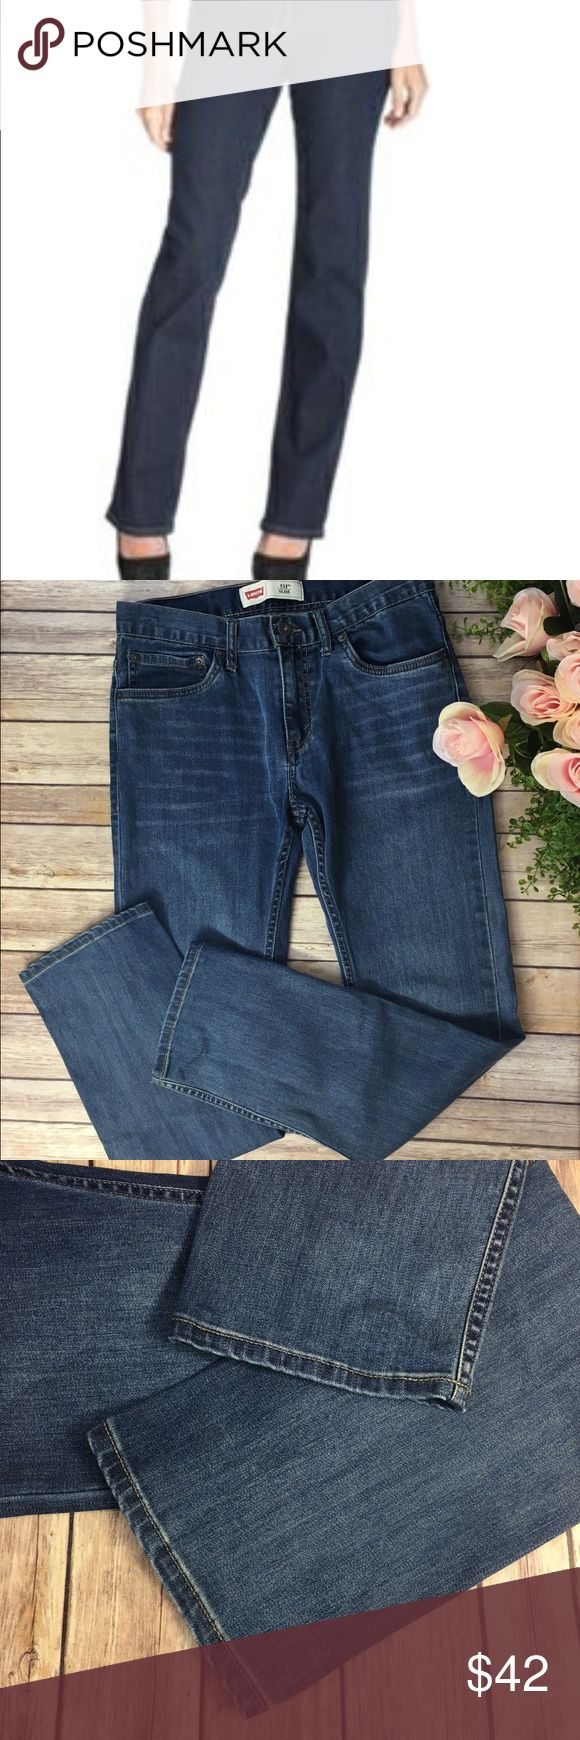 Levi's 511 Slim Woman's Straight Leg Jeans Adorbs! Great Condition, pre-owned Levi's 511 Slim  Woman's Jeans Size 18R, W29 L29  No noticeable Flaws  Please see measurement photo to ensure fit prior to purchase. Levis 511 Jeans Straight Leg